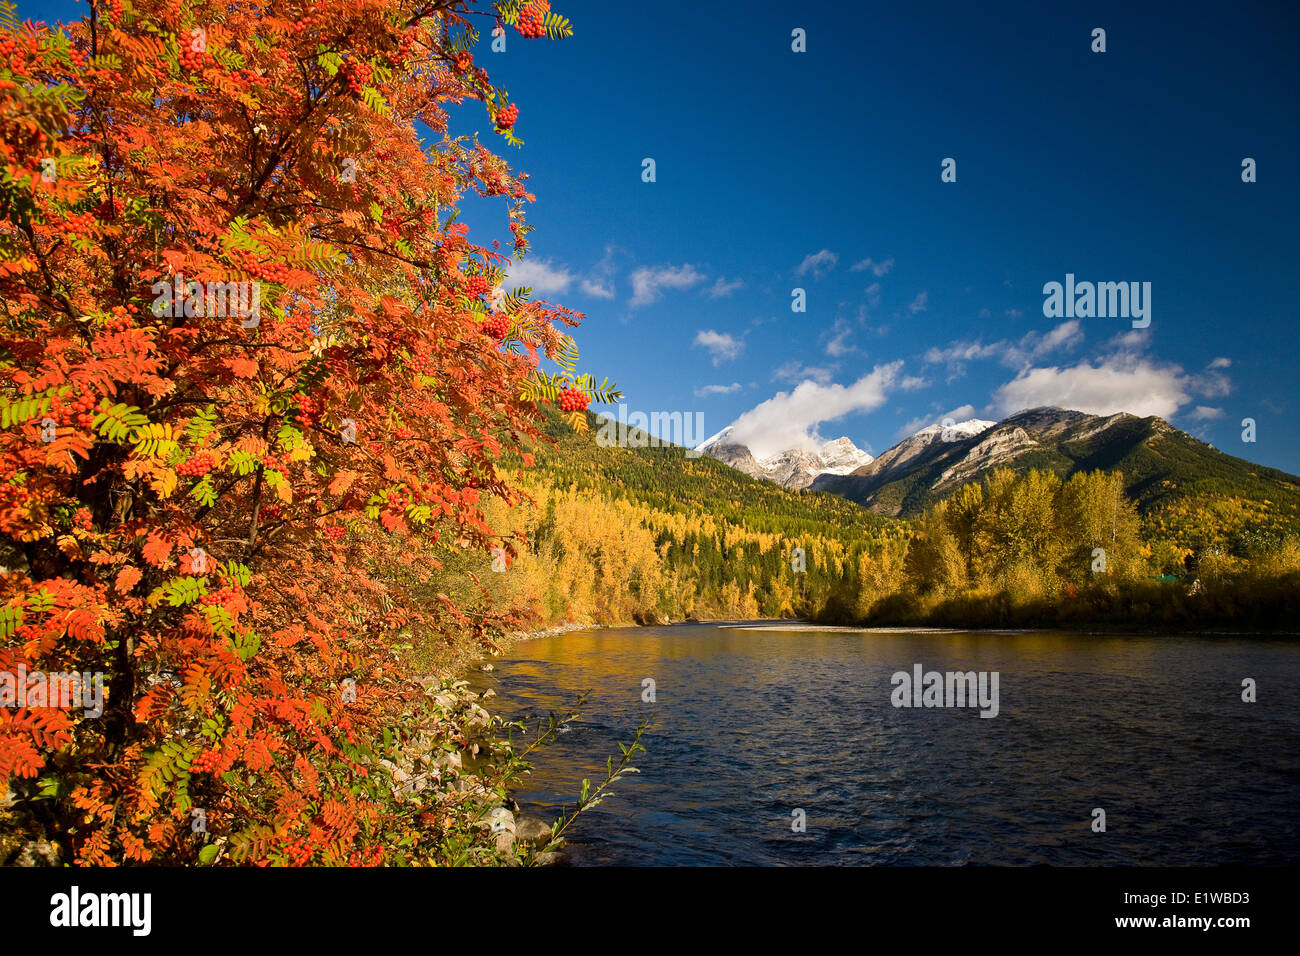 Elk River and Three Sisters in autumn, Fernie, BC, Canada. - Stock Image